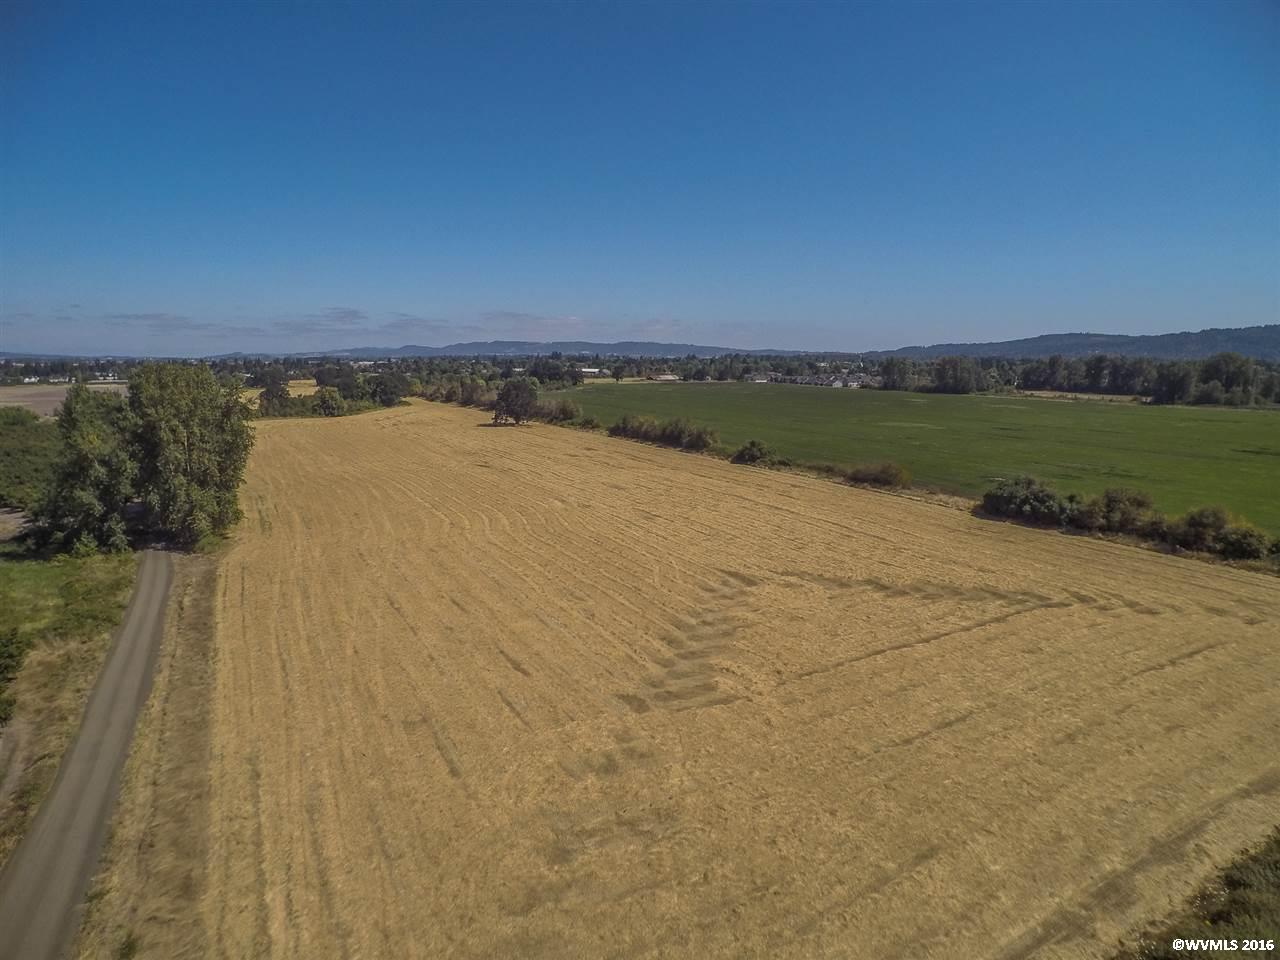 Image of  for Sale near Independence, Oregon, in Polk County: 46.68 acres